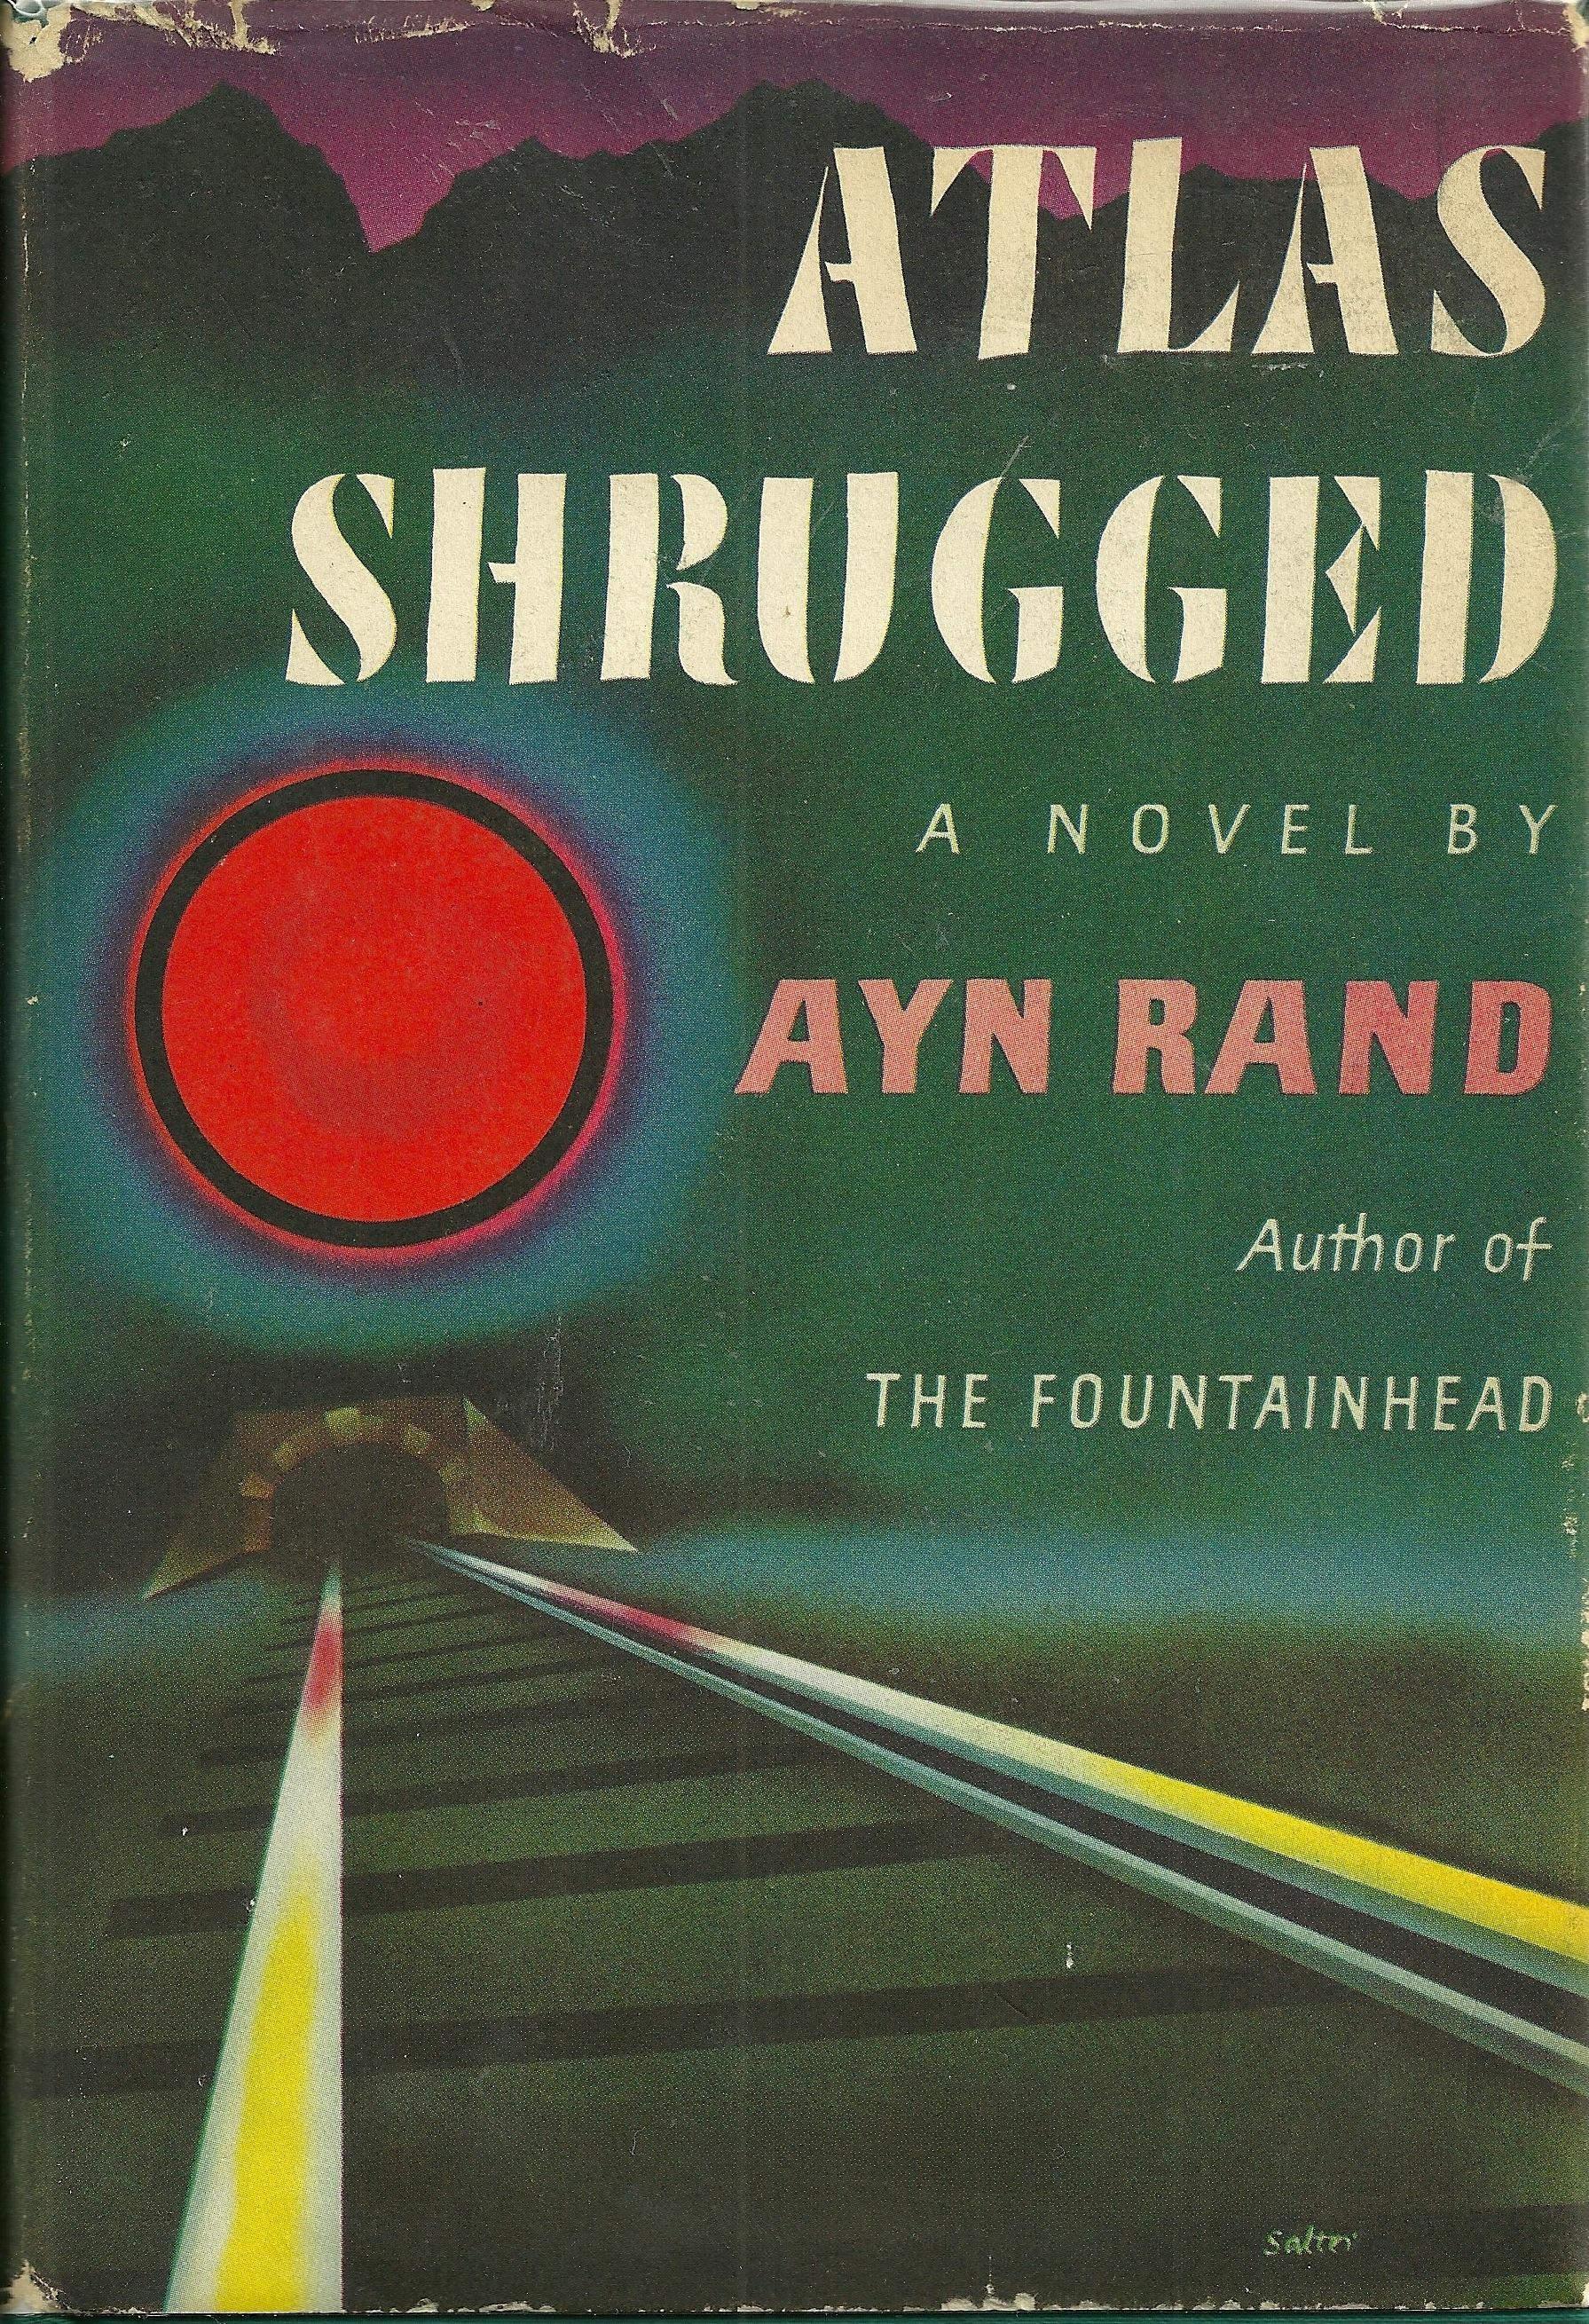 Book Design With Regard To Atlas Shrugged Cover Art (View 3 of 20)